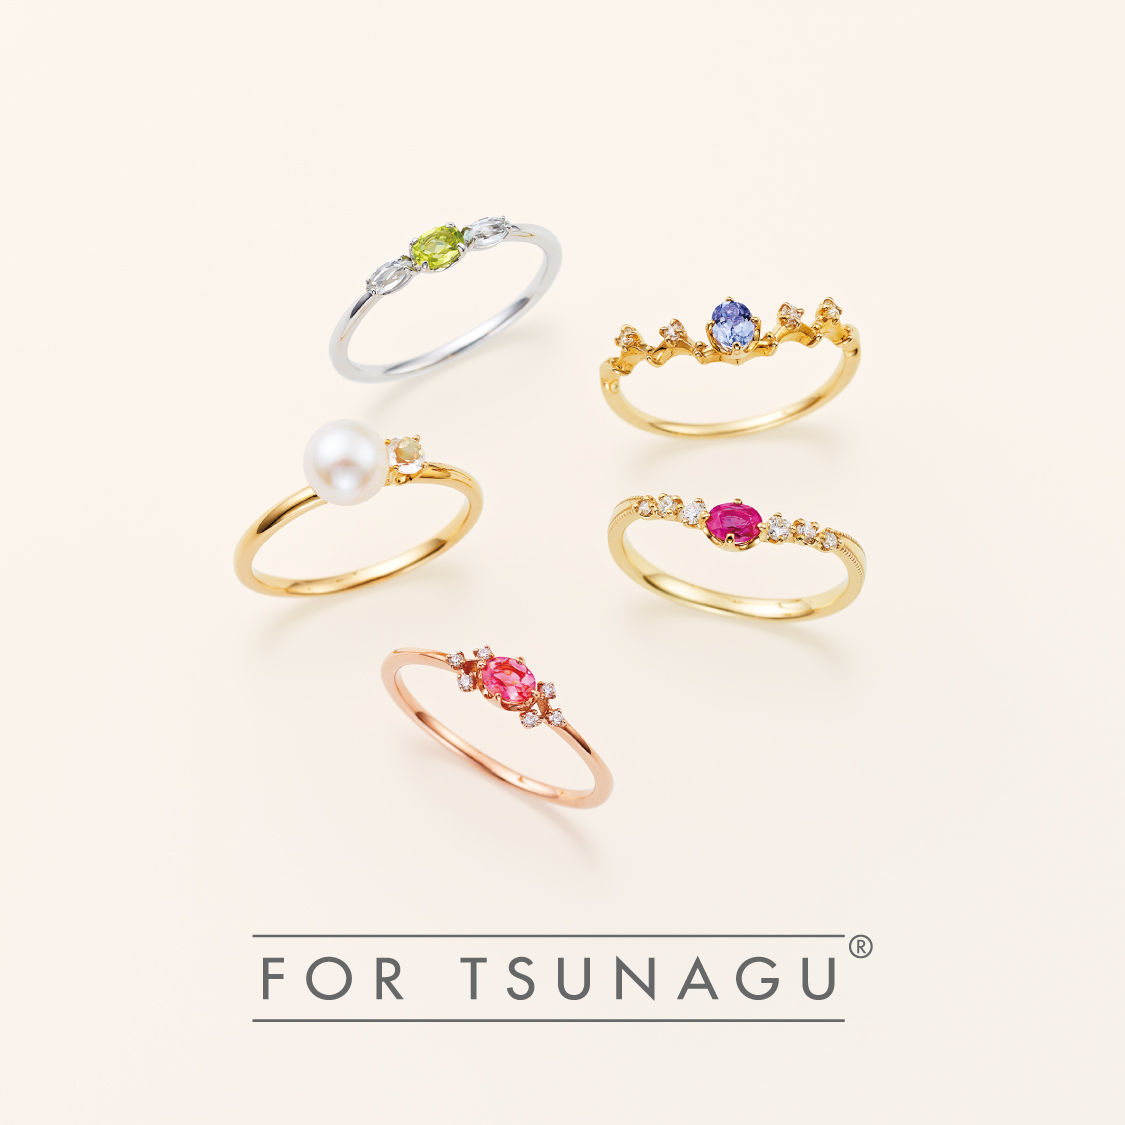 FOR TSUNAGU